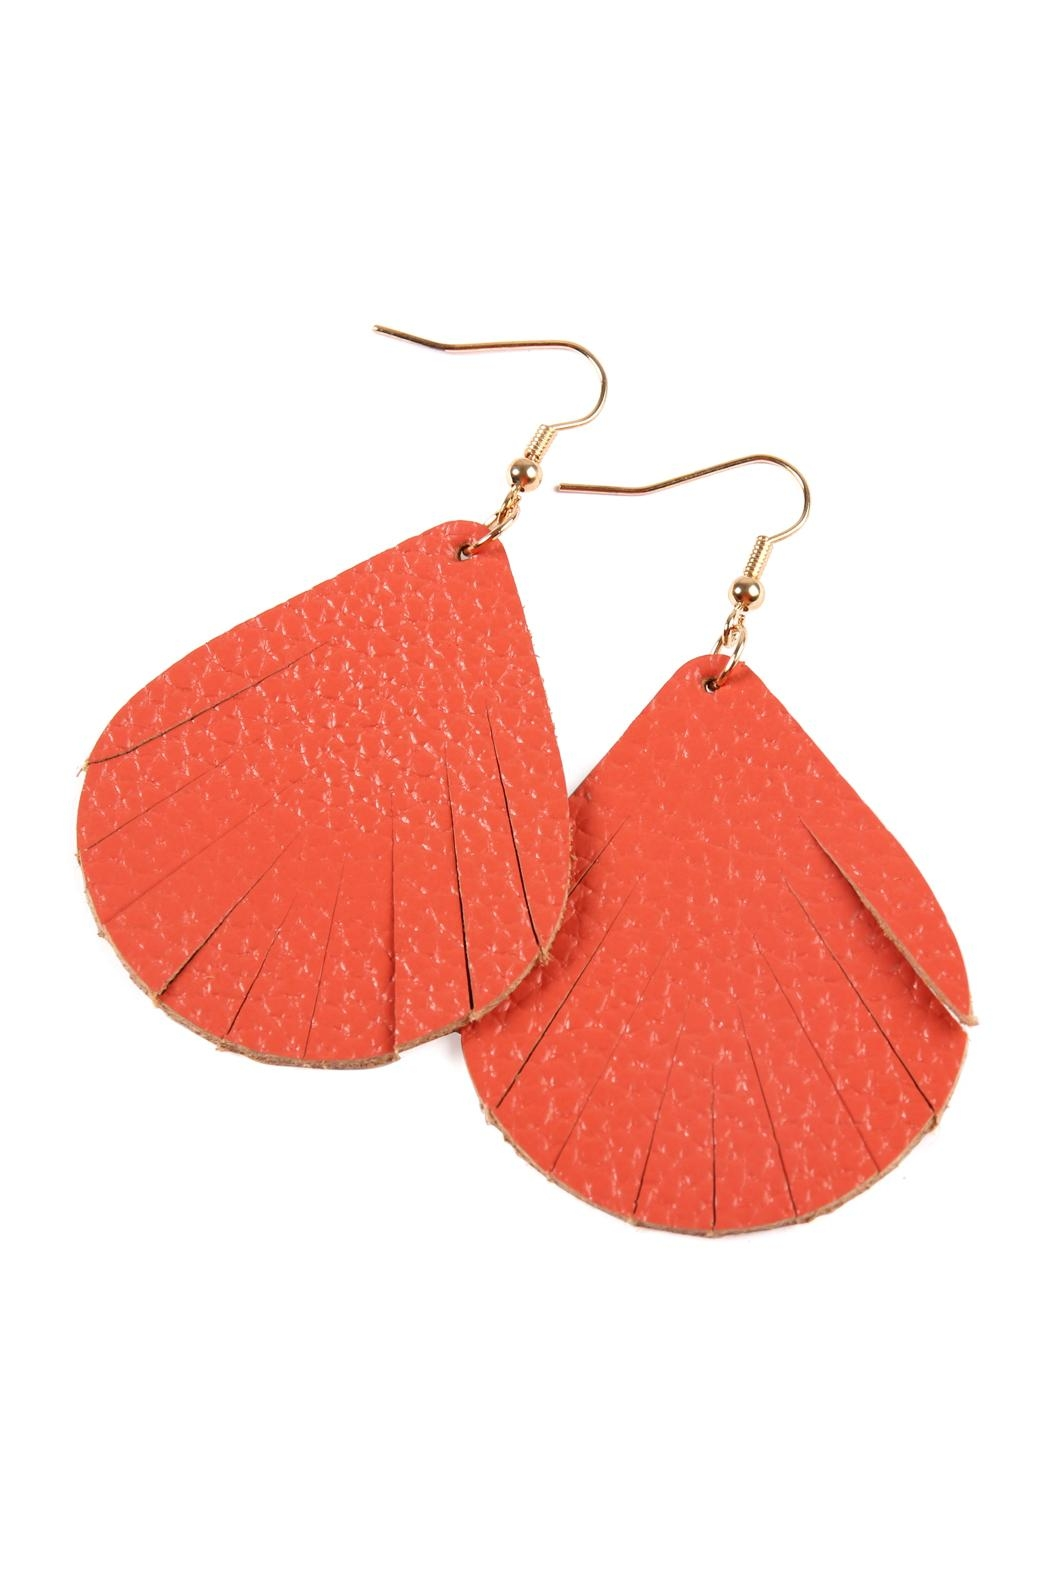 Riah Fashion Fringed Pear Shape Leather Earrings - Front Full Image